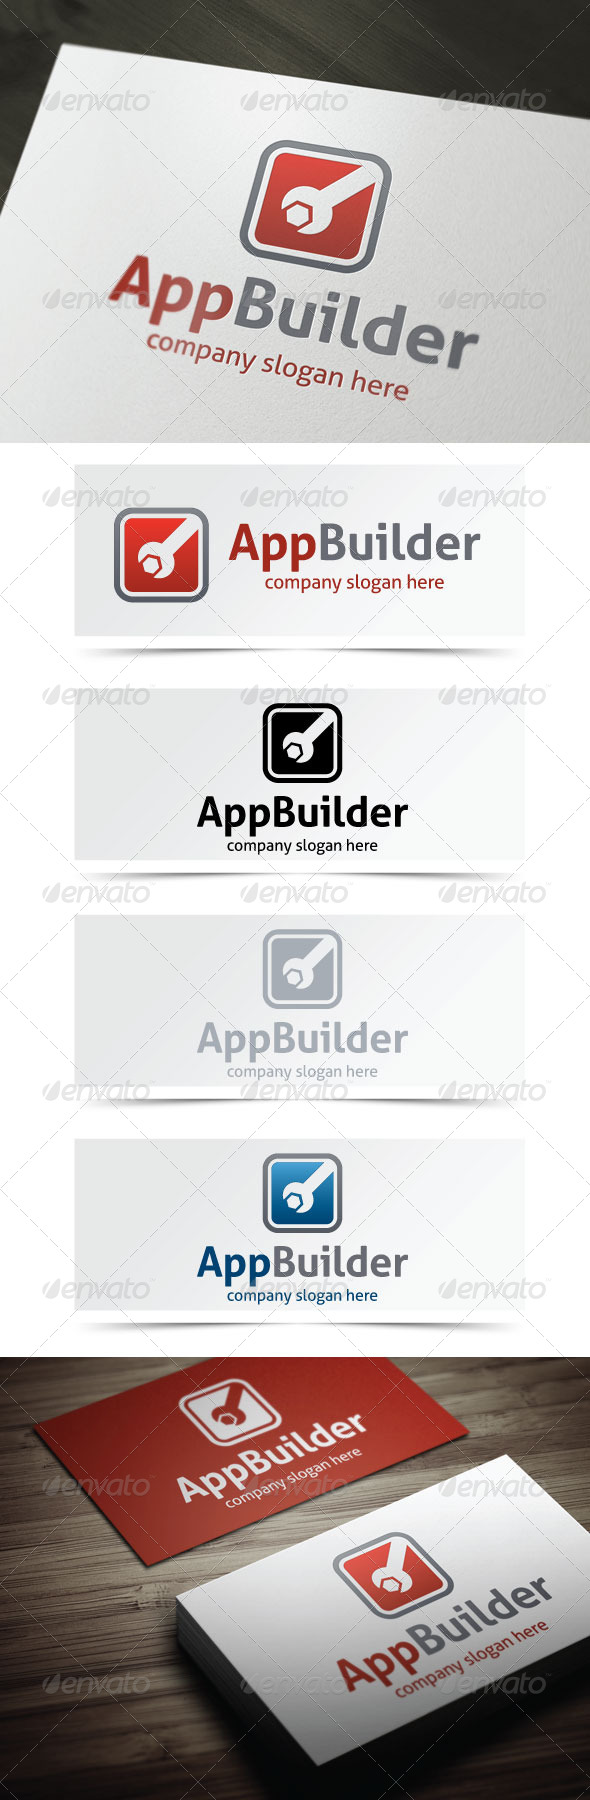 GraphicRiver App Builder 4945055